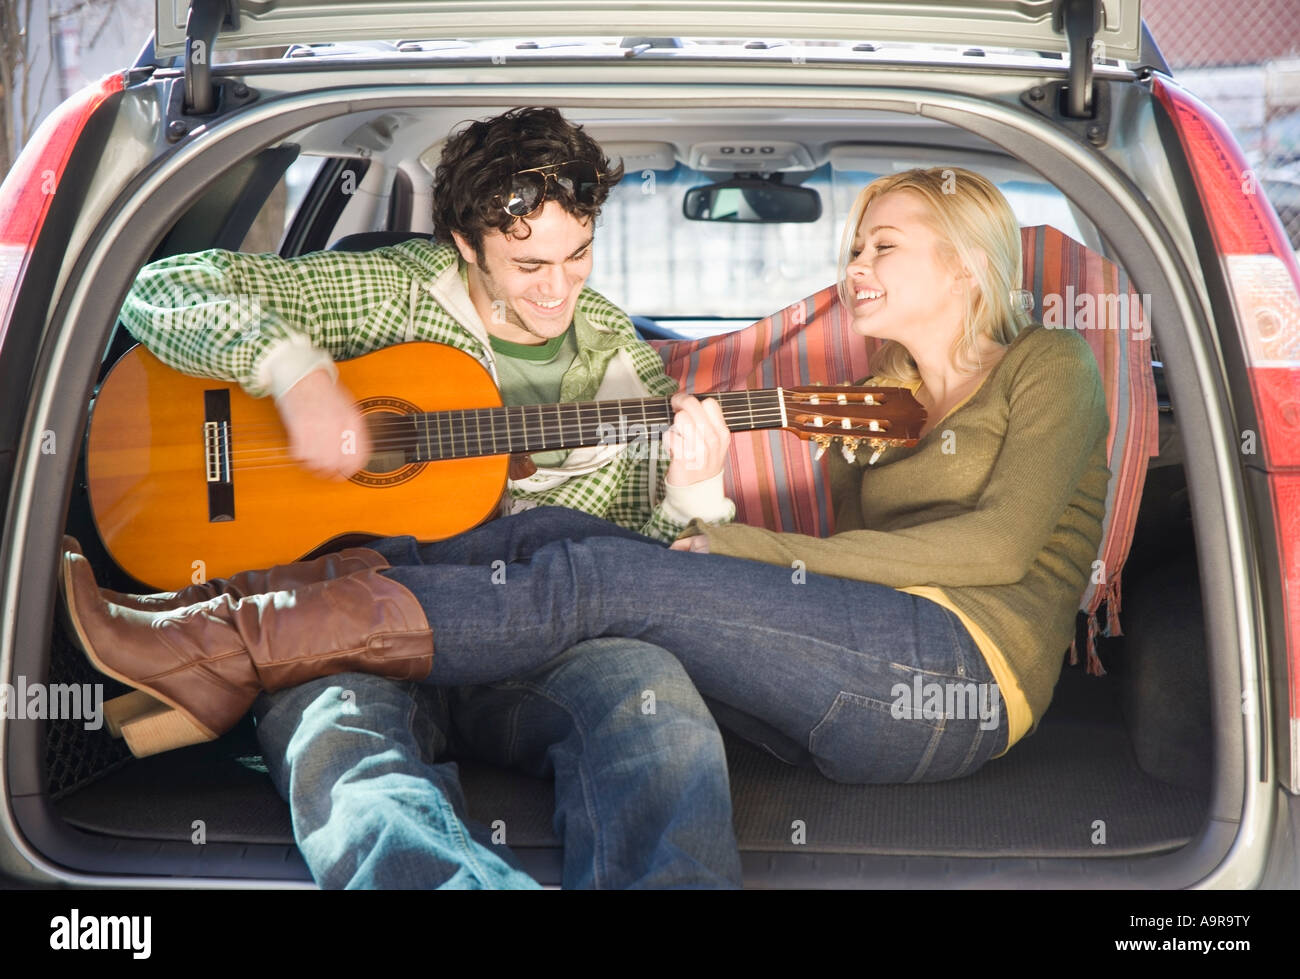 Couple sitting in back of car with guitar - Stock Image